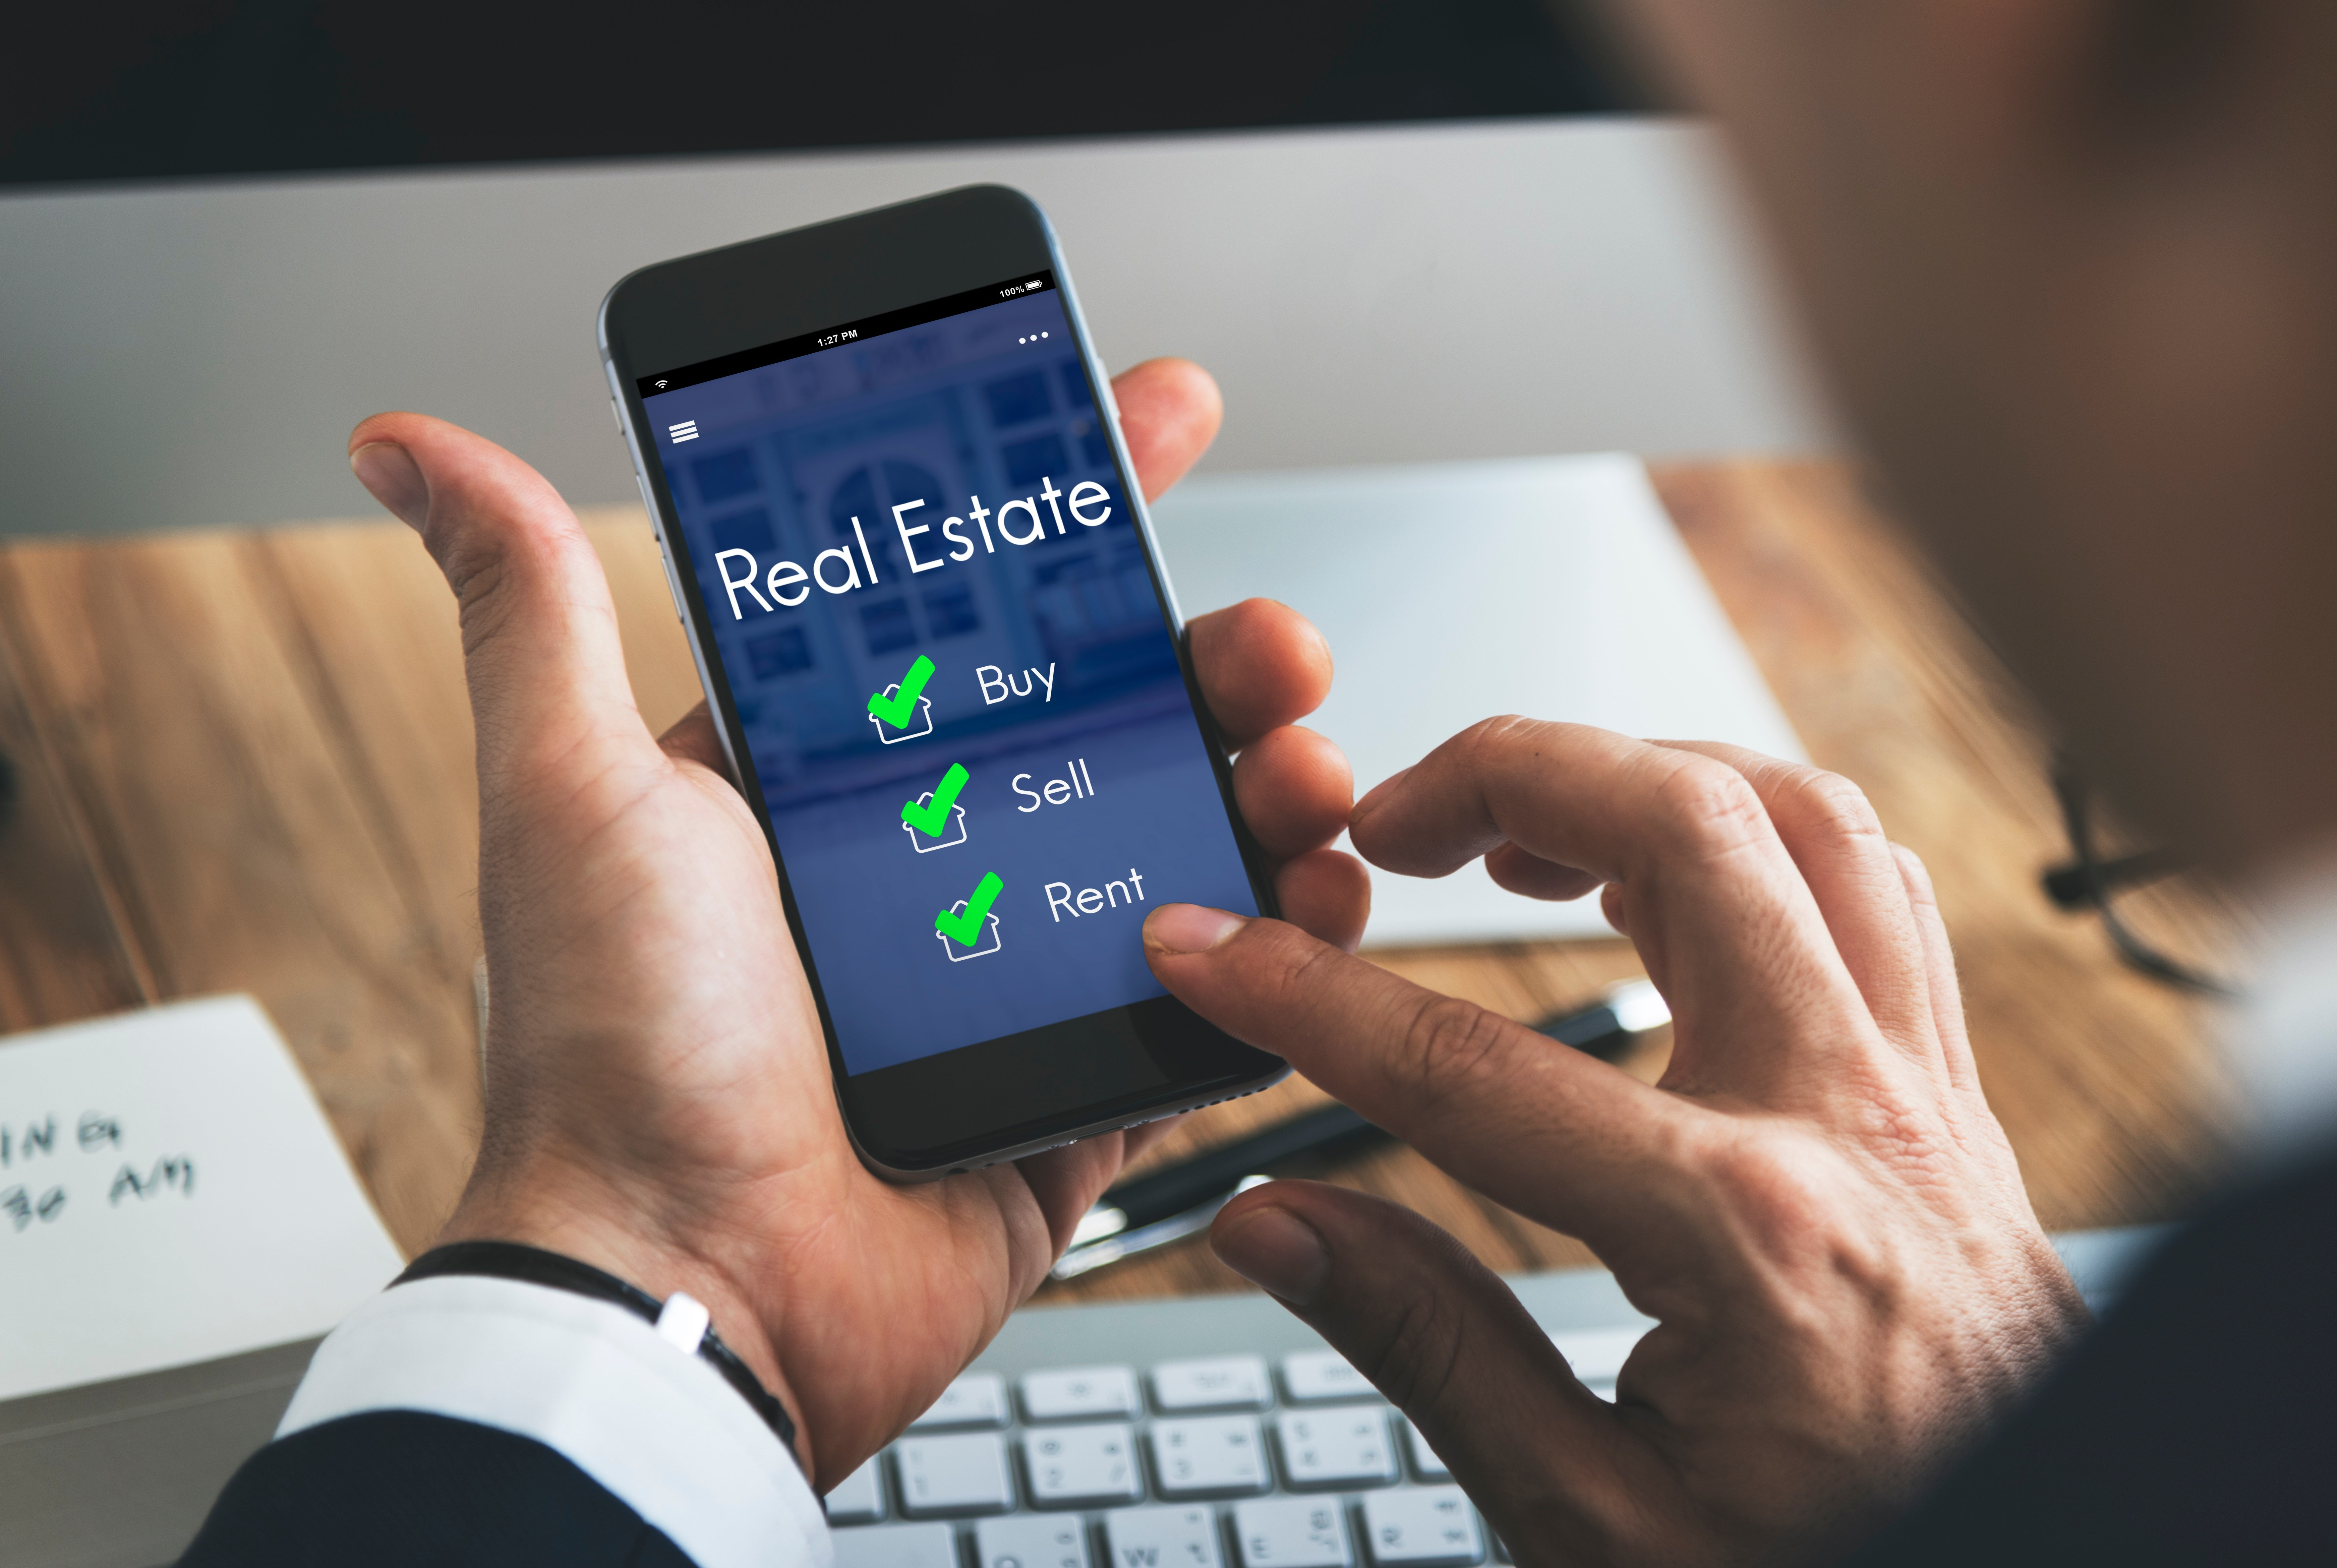 Real Estate Marketing With SMS